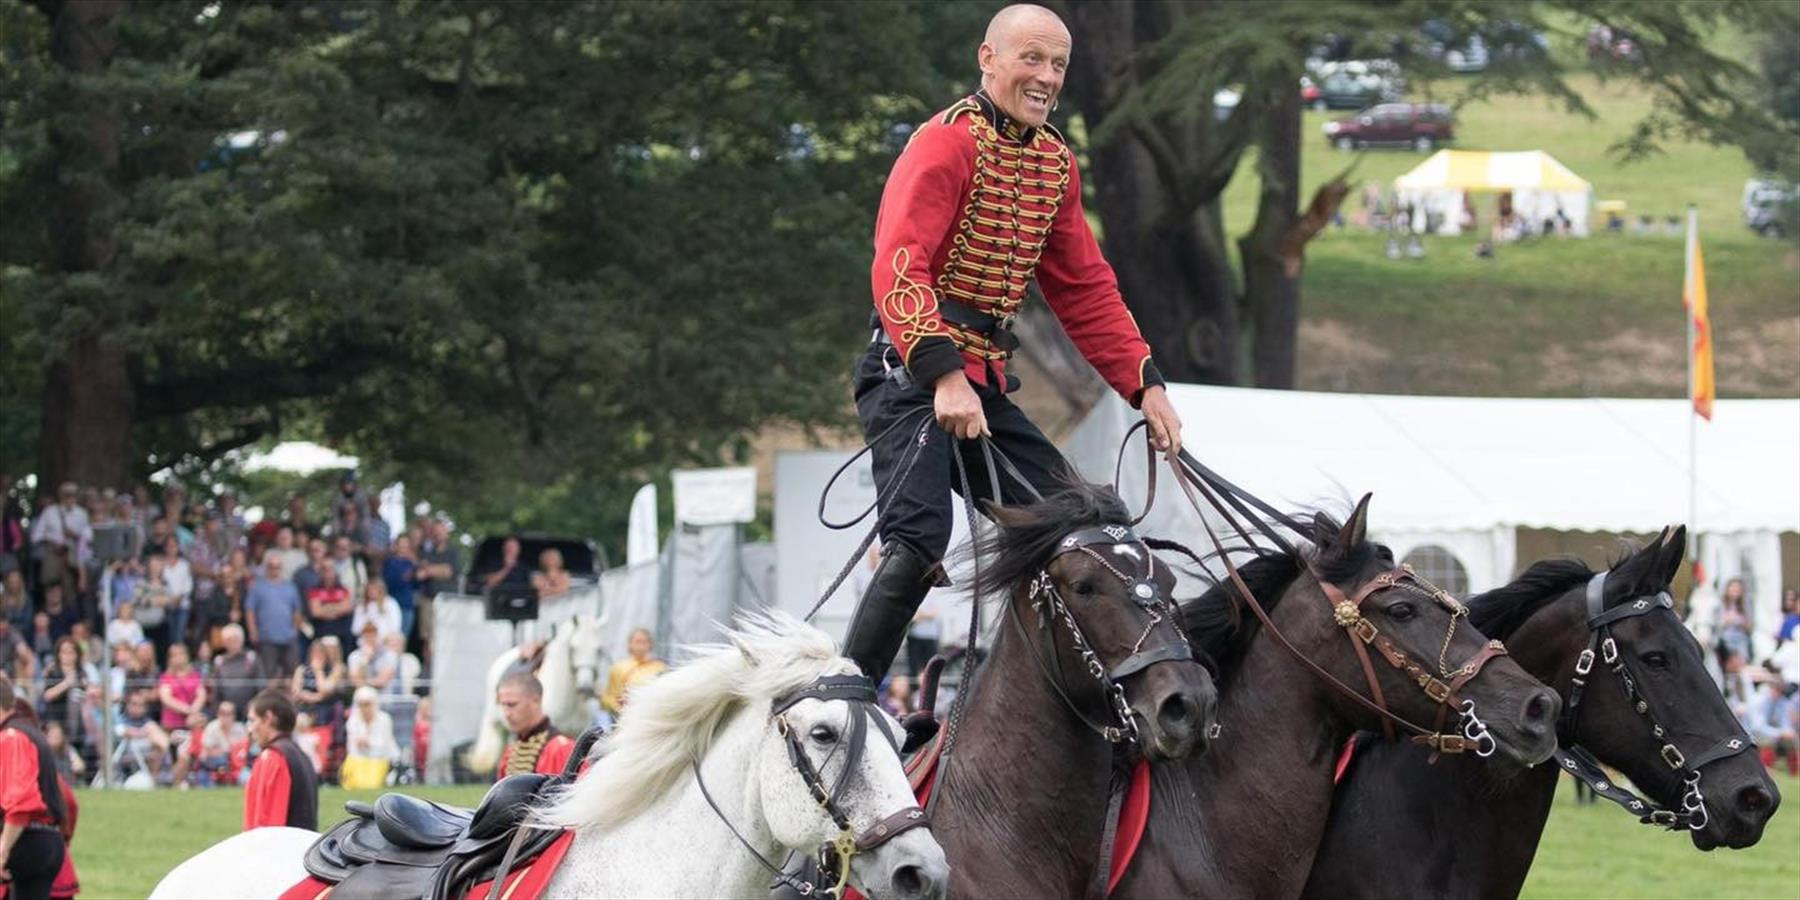 Festival of the Horse 1